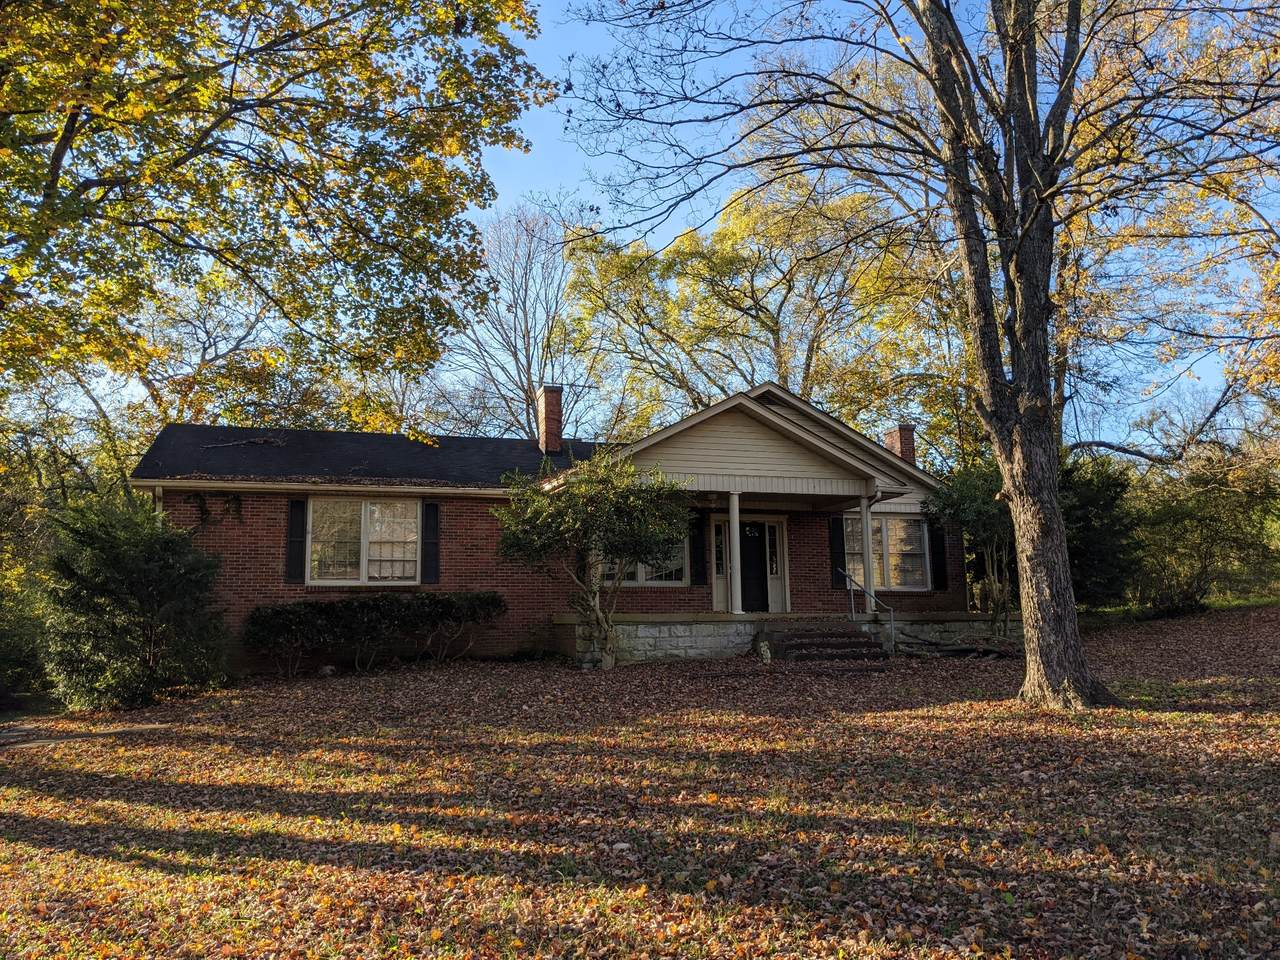 805 S Dickerson Rd - Photo 1